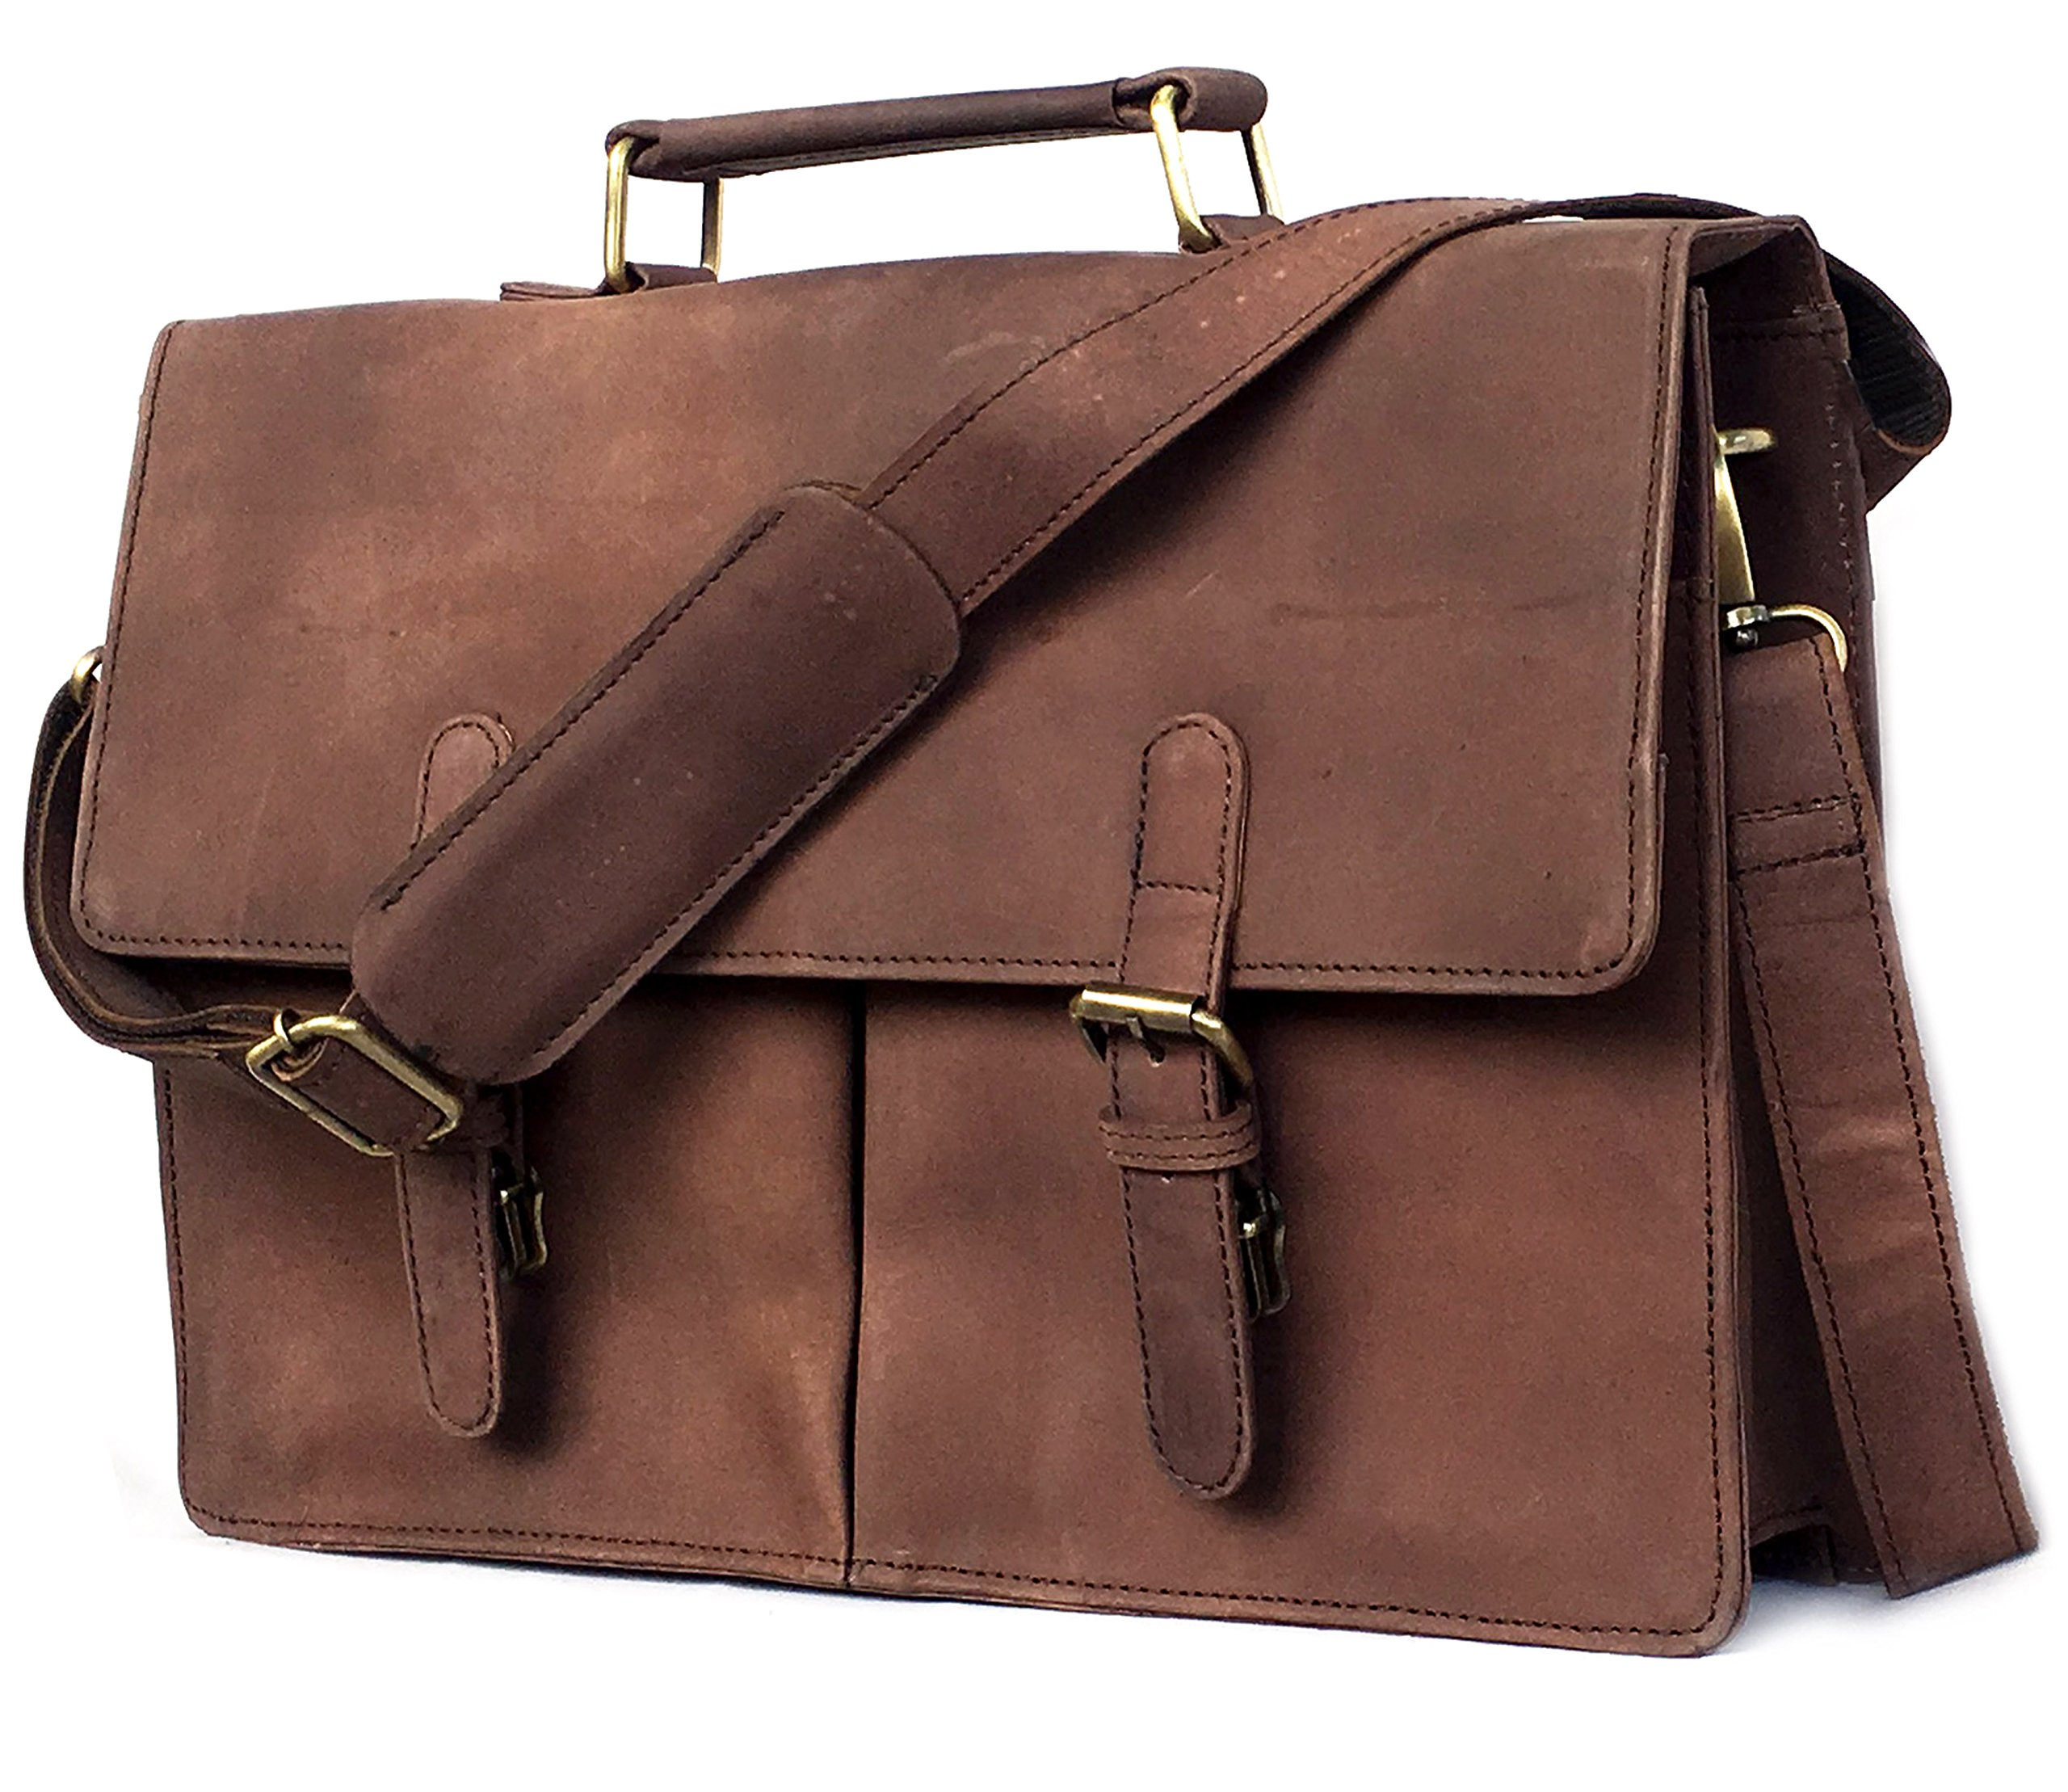 DHK 16 Inch Retro Buffalo Hunter Leather Laptop Messenger Bag Office Briefcase College Bag leather bag for men and women